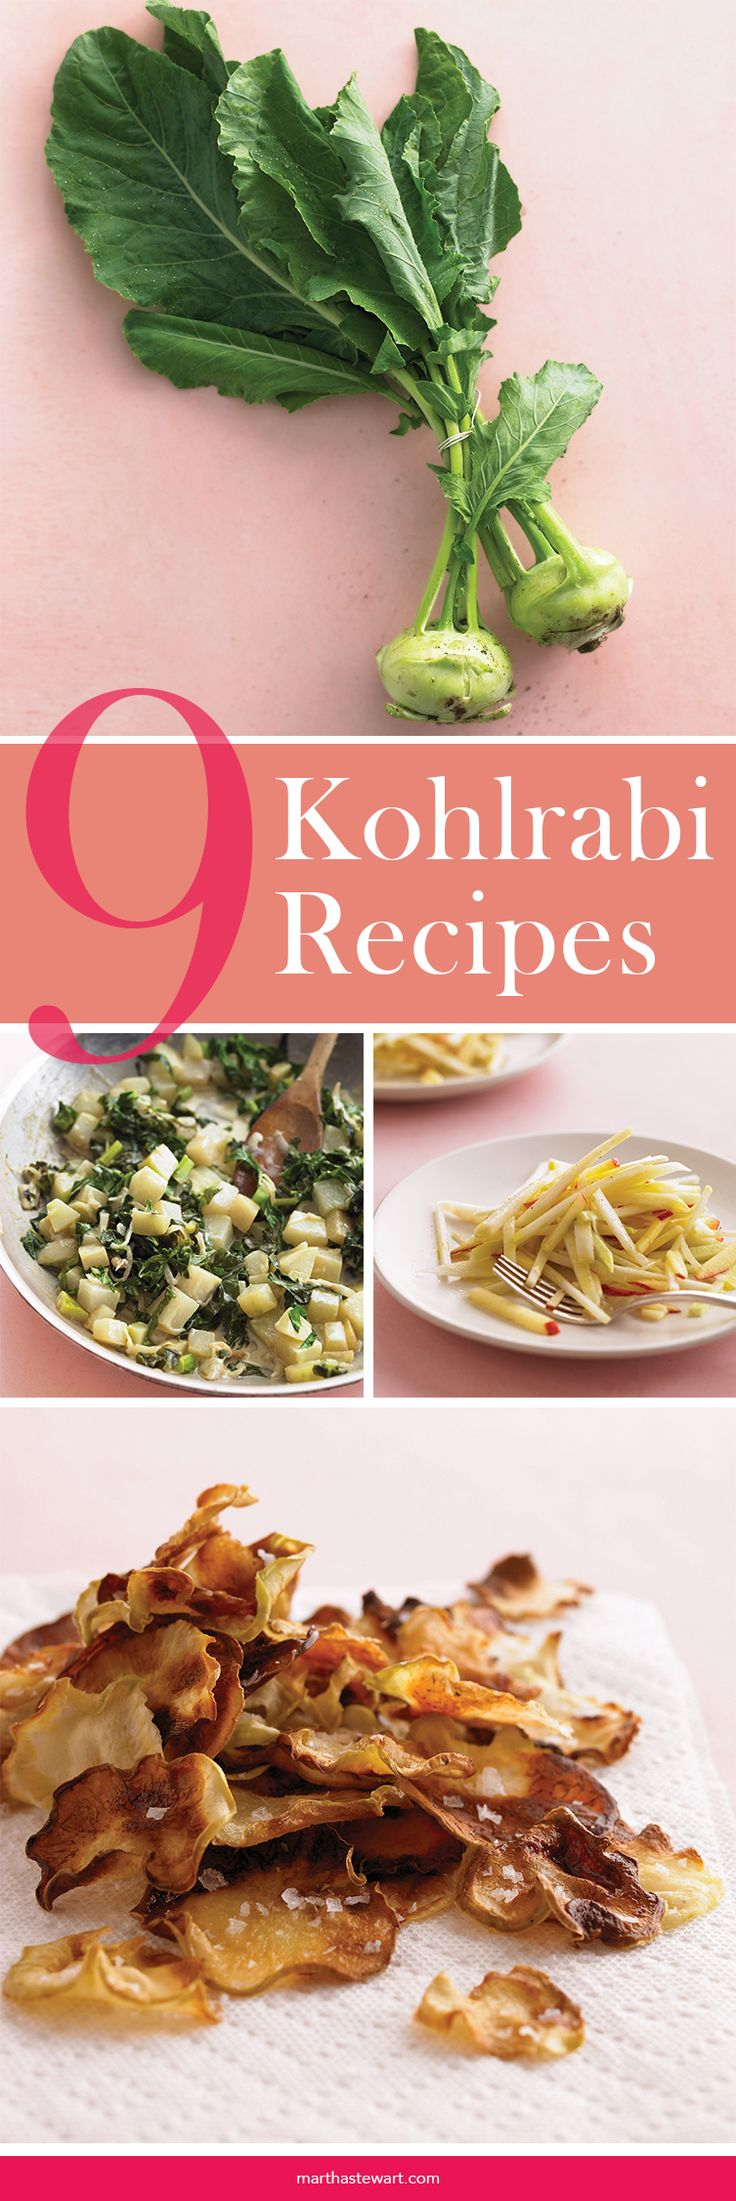 "Kohlrabi Recipes | Martha Stewart Living - Part bulb, part bundle of greens, kohlrabi may seem one of the more intimidating items at the farmers' market, but it offers a delightful combination of familiar tastes. ""It's got the texture of a radish and the sweetness of jicama, with a slight hint of broccoli,"" says food editor Sarah Carey. ""The edible leaves are like a milder version of collards."""